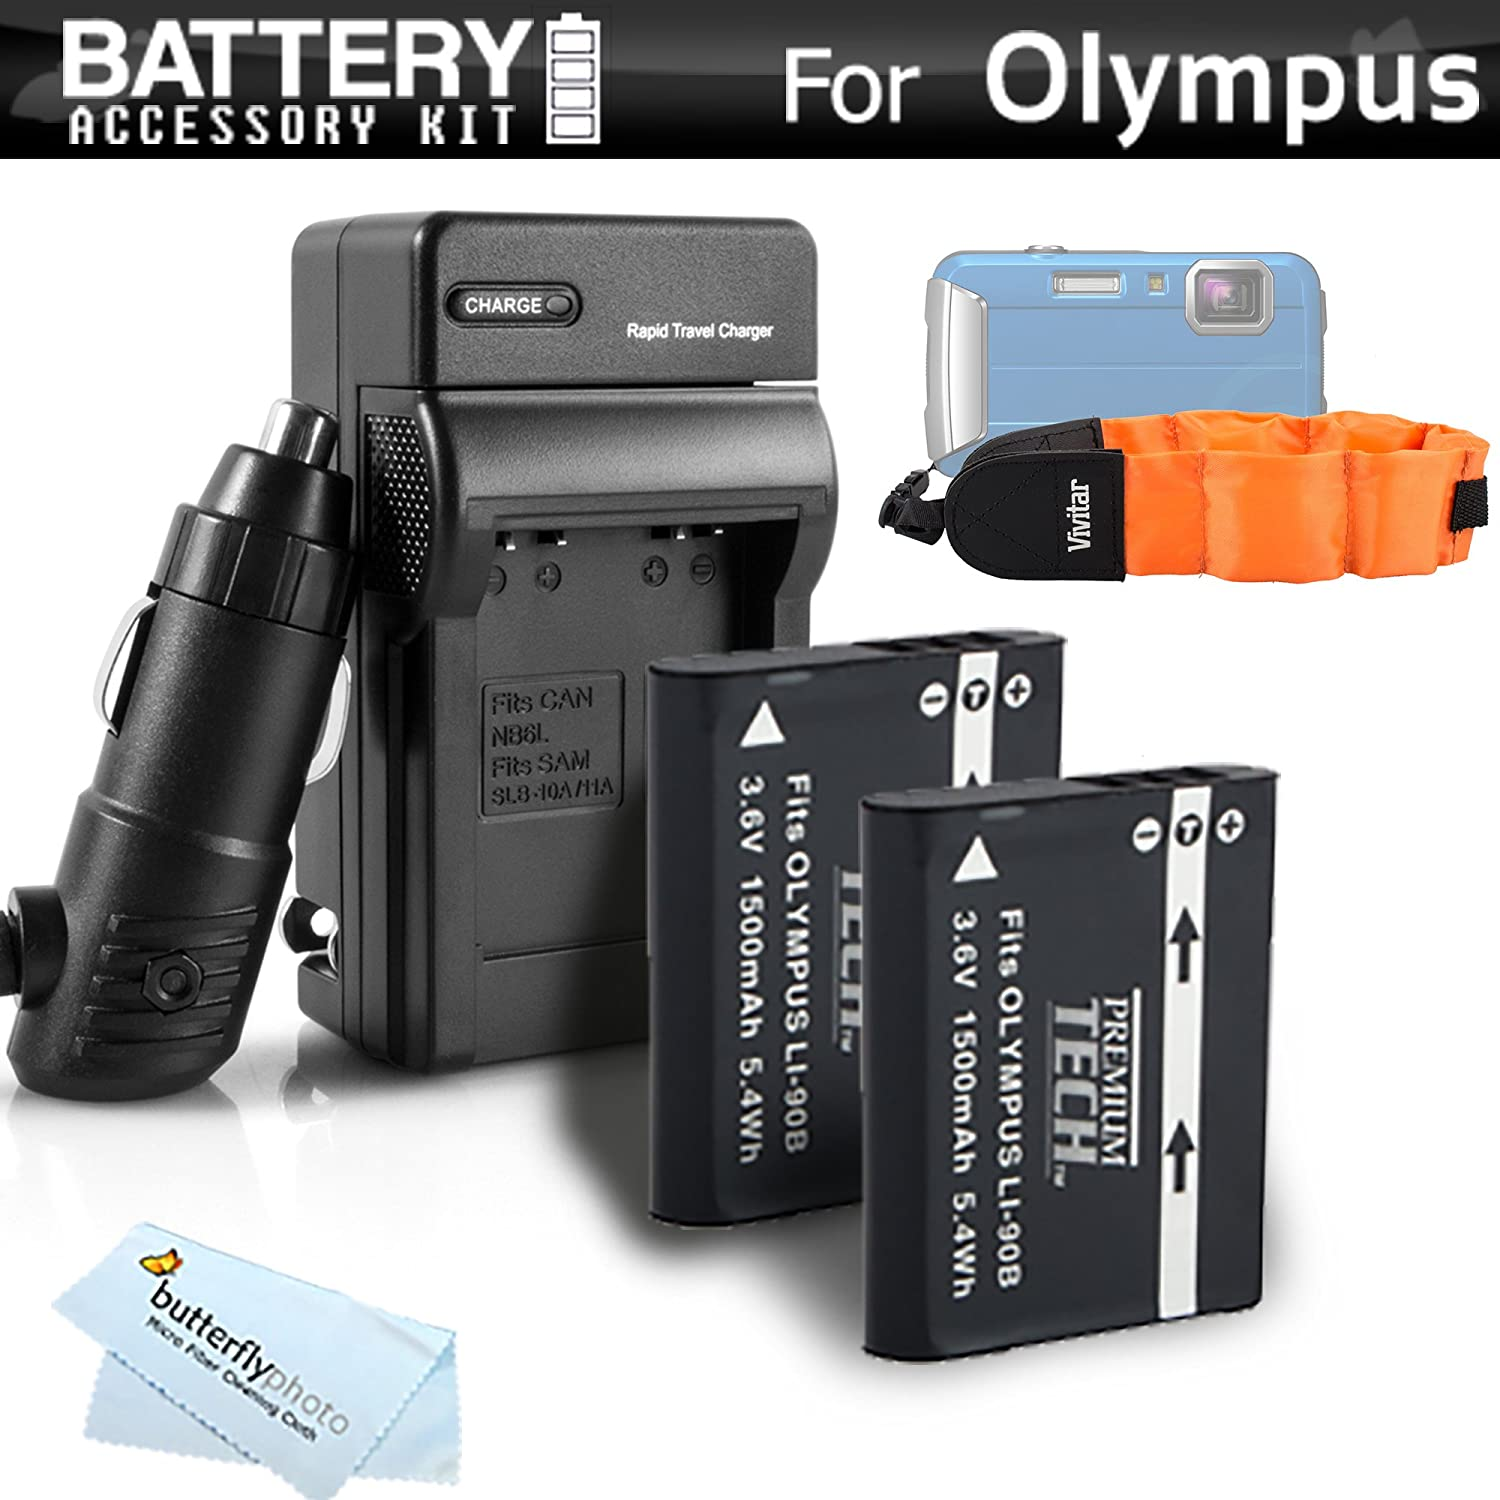 2 Pack Battery And Charger Kit Bundle For Olympus TOUGH TG-1 iHS, TG-2 iHS, TG-2iHS, TG-3, TG-4 Waterproof Digital Camera Includes 2 Replacement (1500Mah) LI-90B, LI-92B Batteries + Charger + More ButterflyPhoto 4331902828